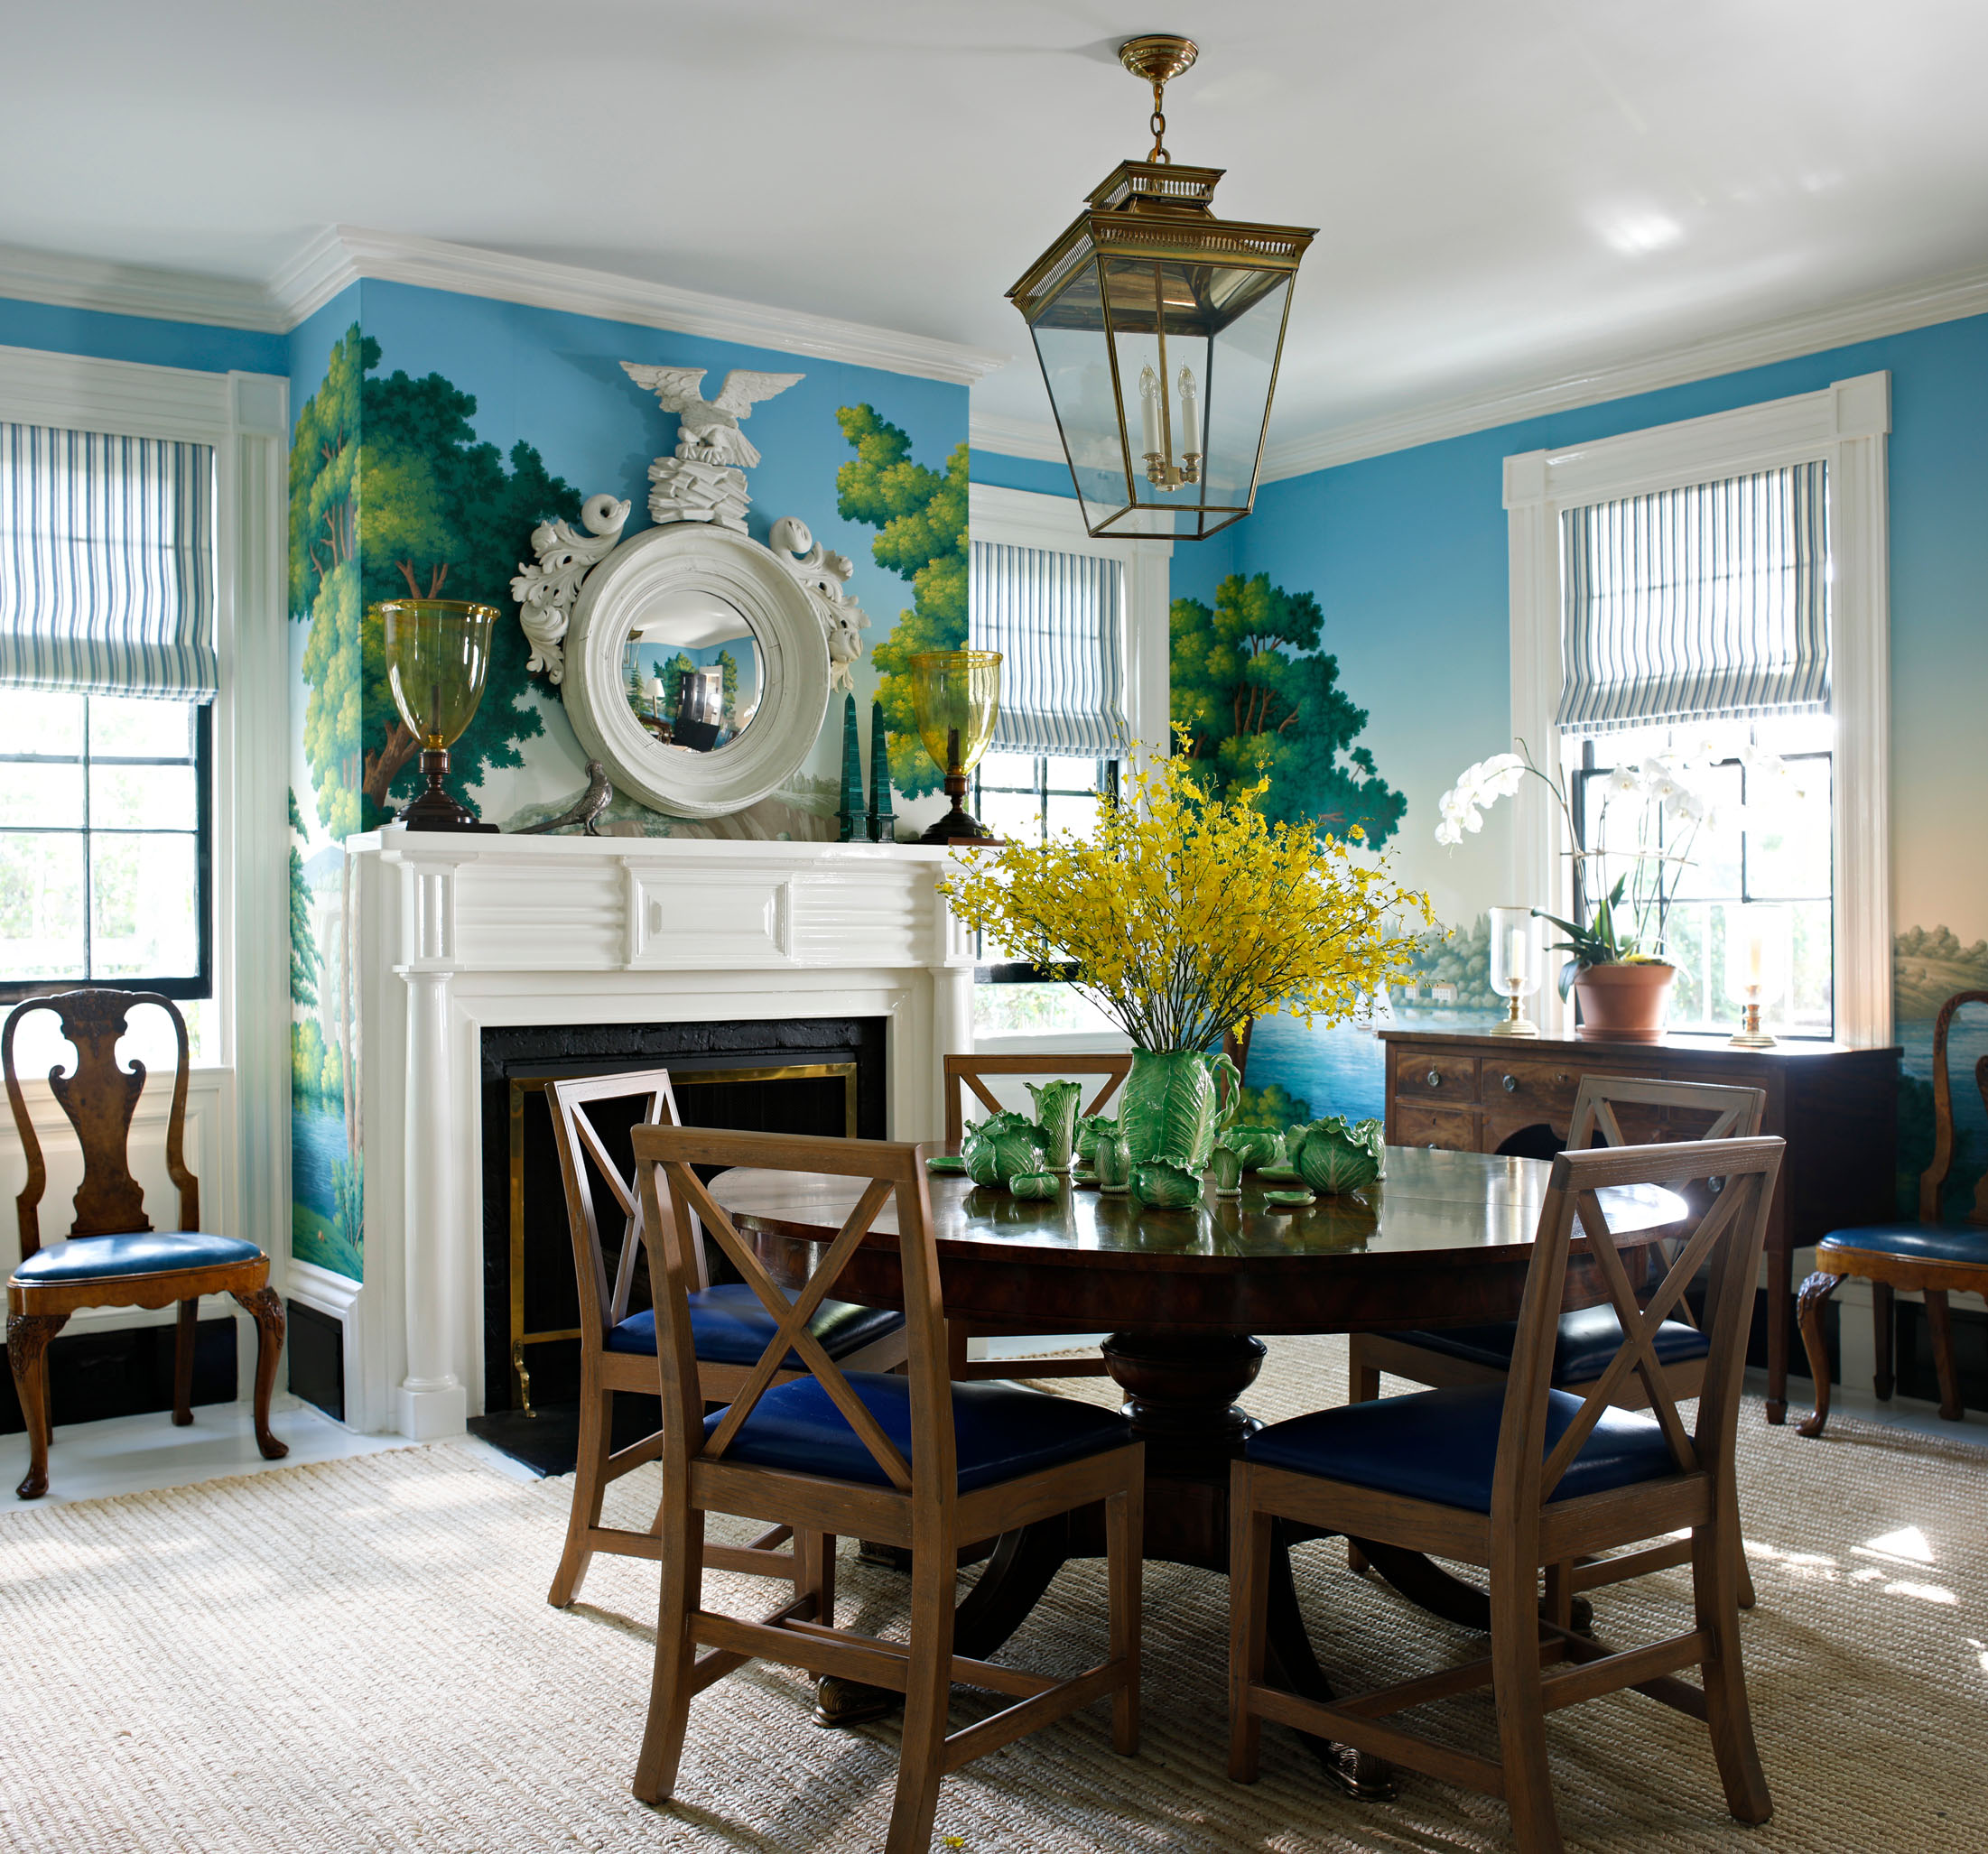 De Gournay scenic wallpaper Sag Harbor dining room by Nick Olsen